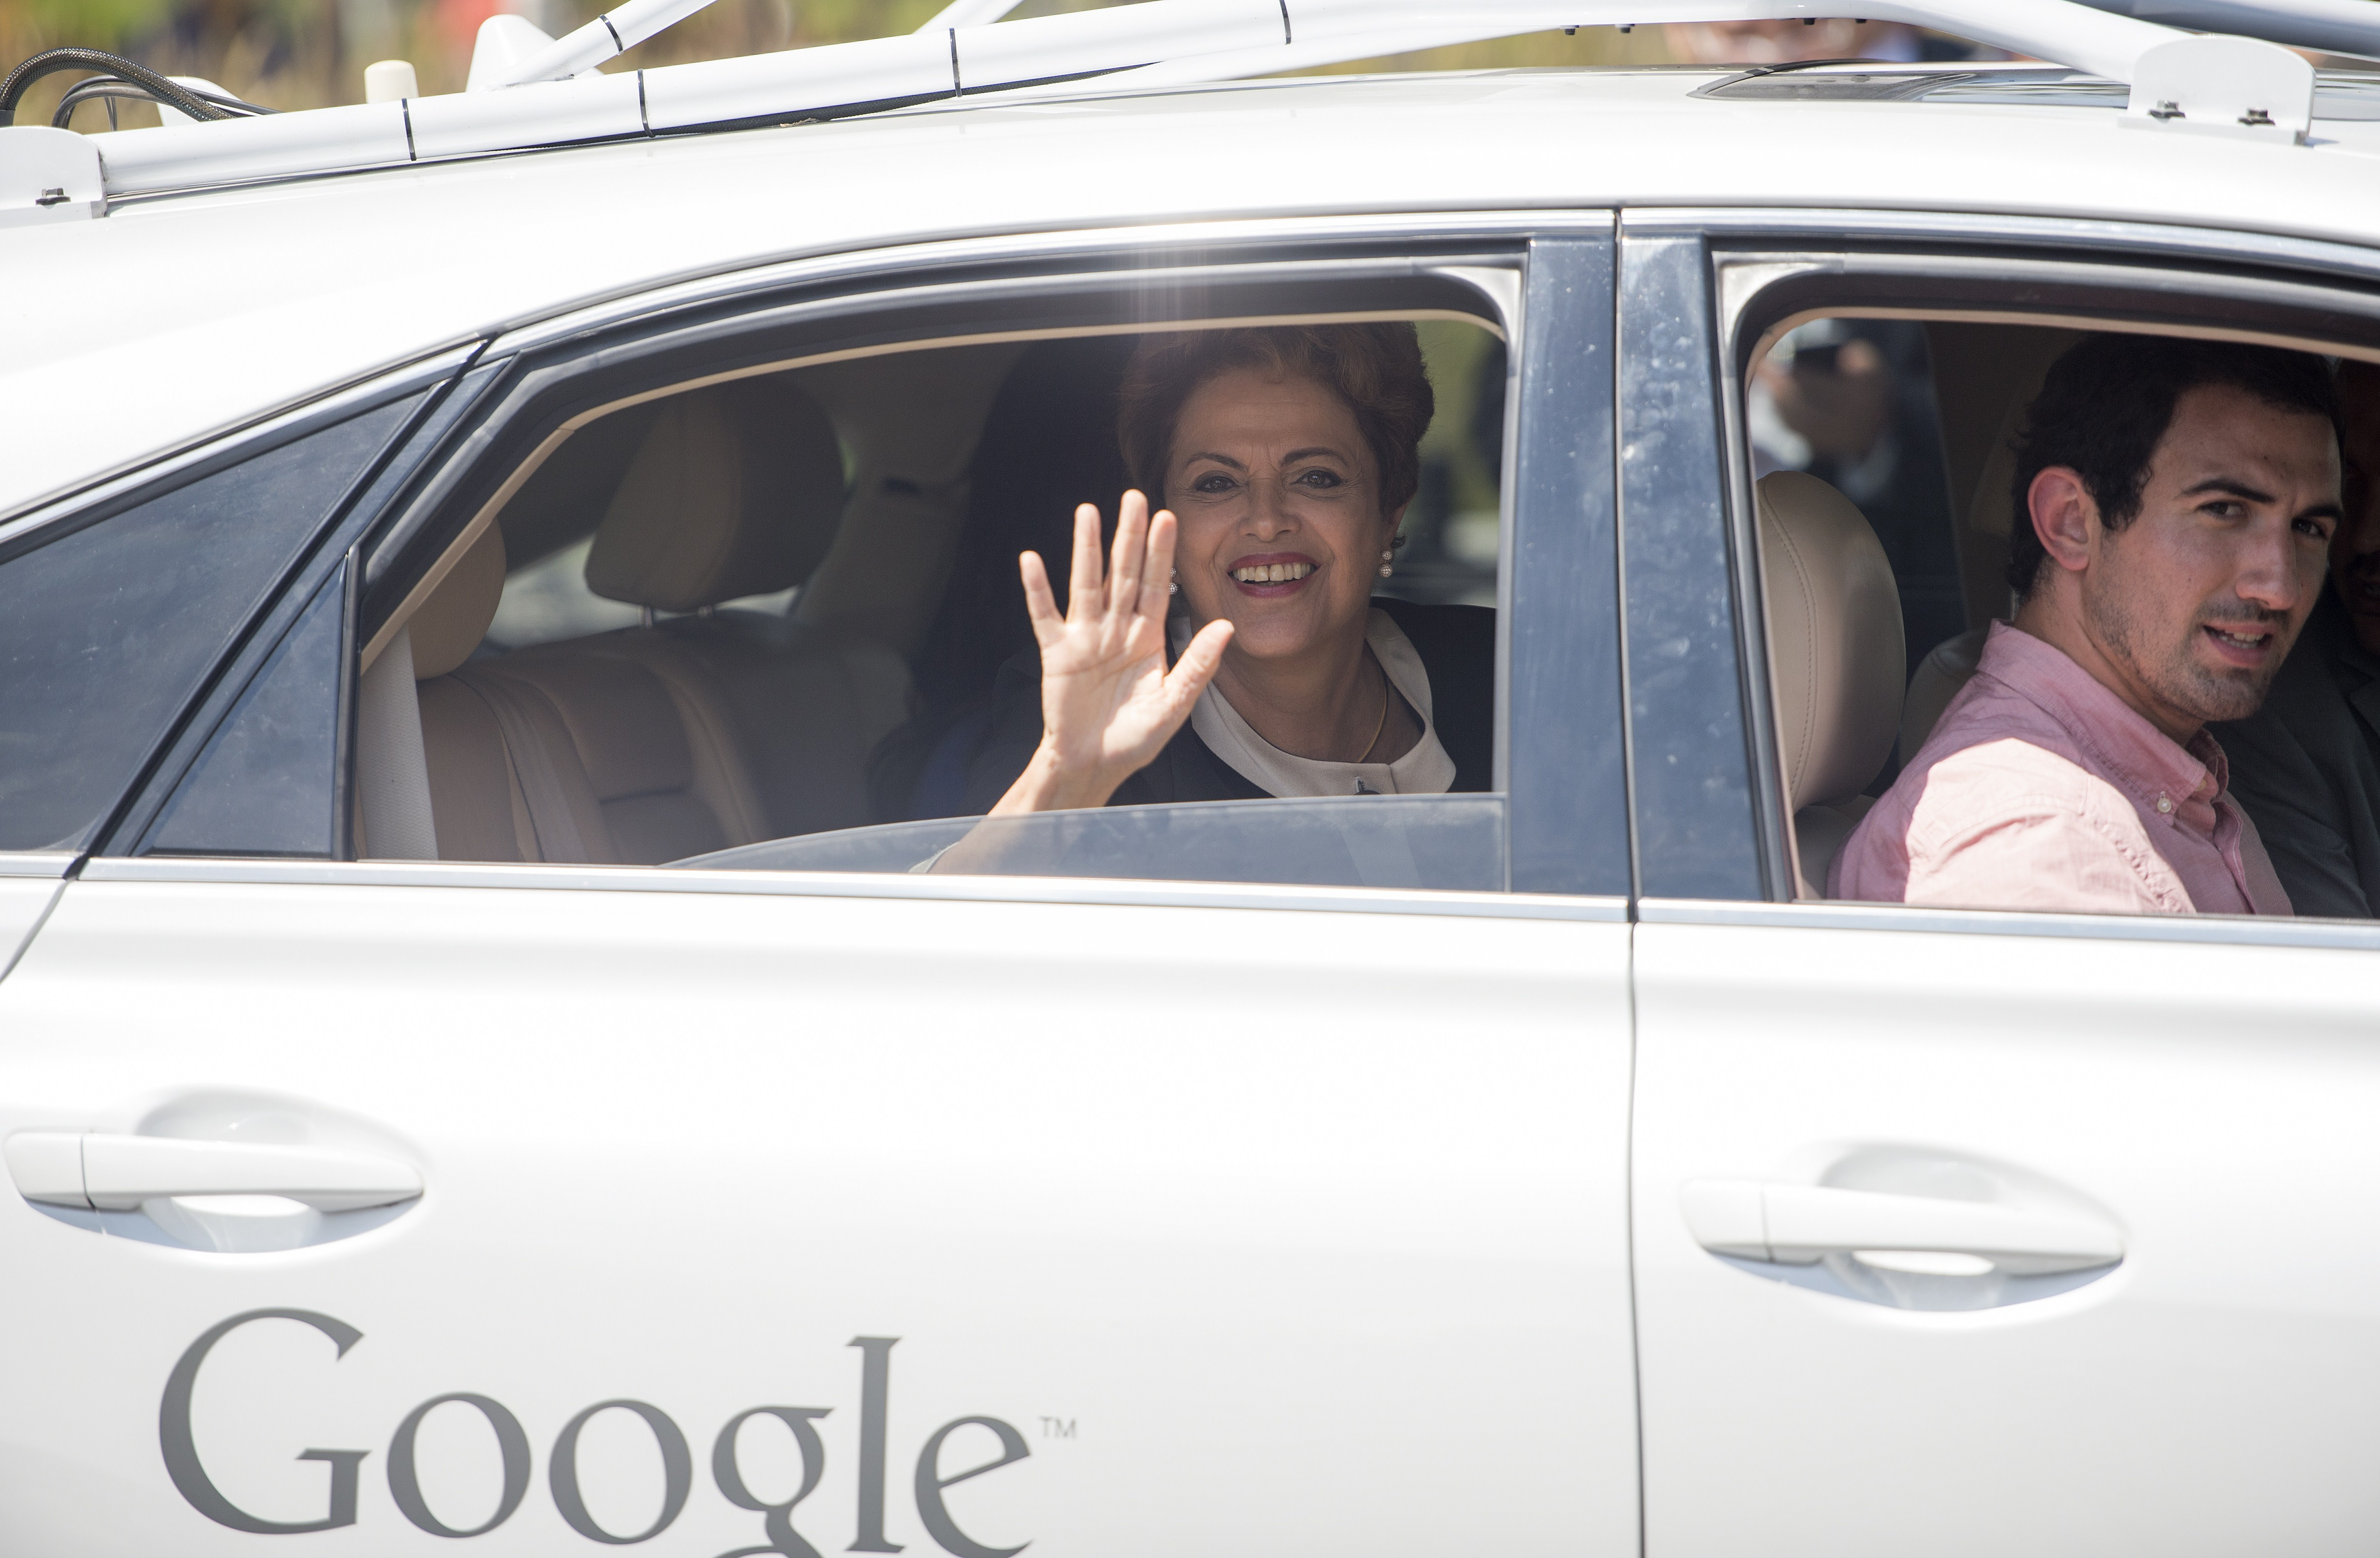 Brazil's President Dilma Rousseff takes a ride in a self-driving car at Google headquarters in Mountain View, California on Wednesday, July 01, 2015.